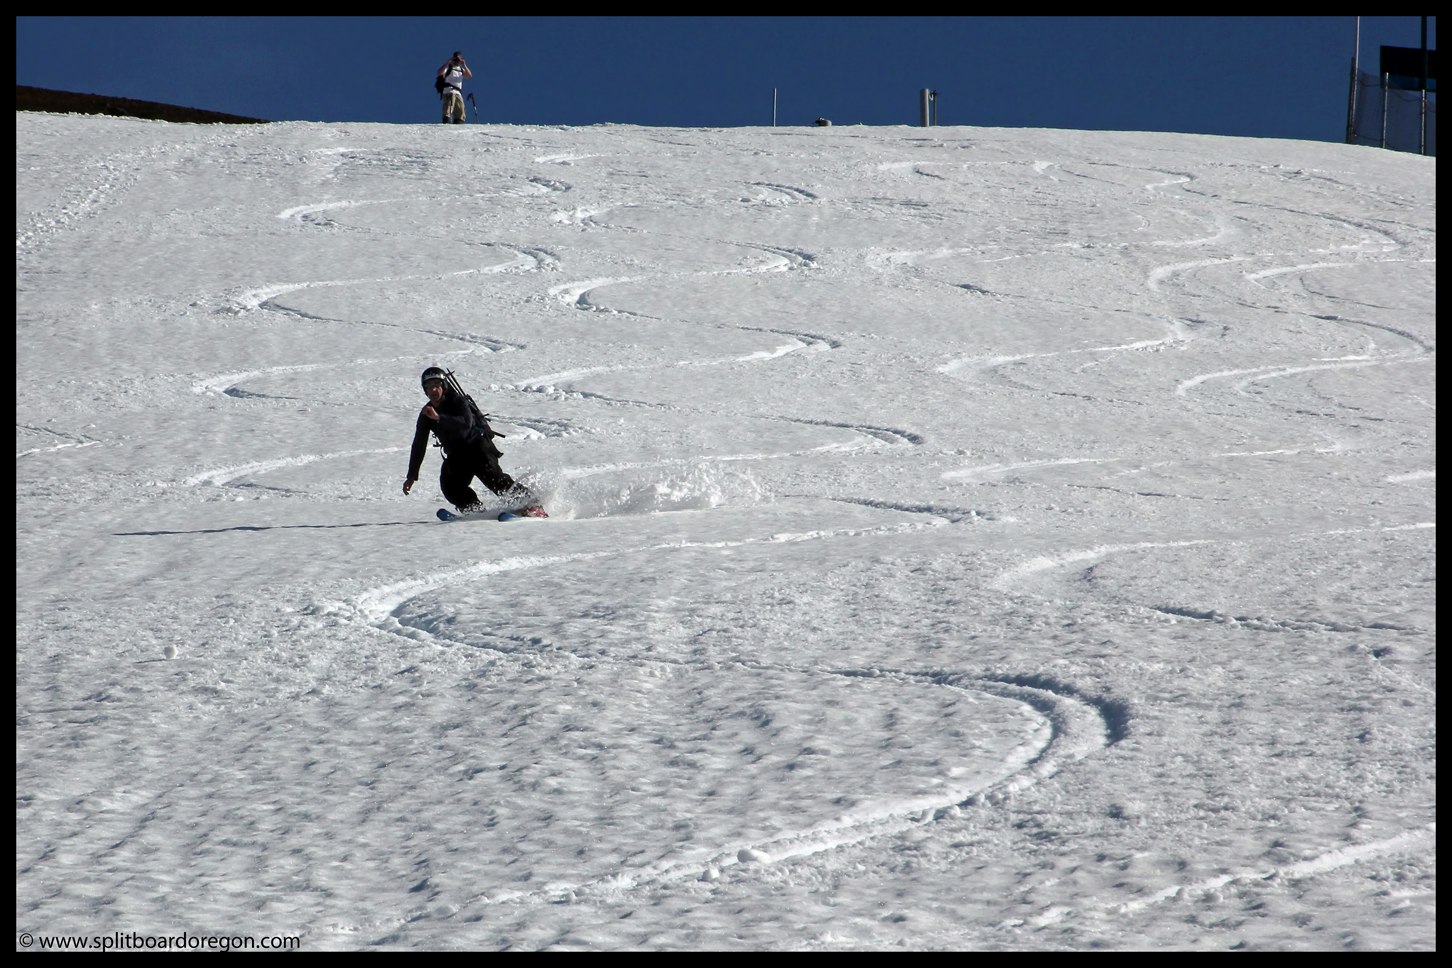 Andy cranking turns on the snow blades